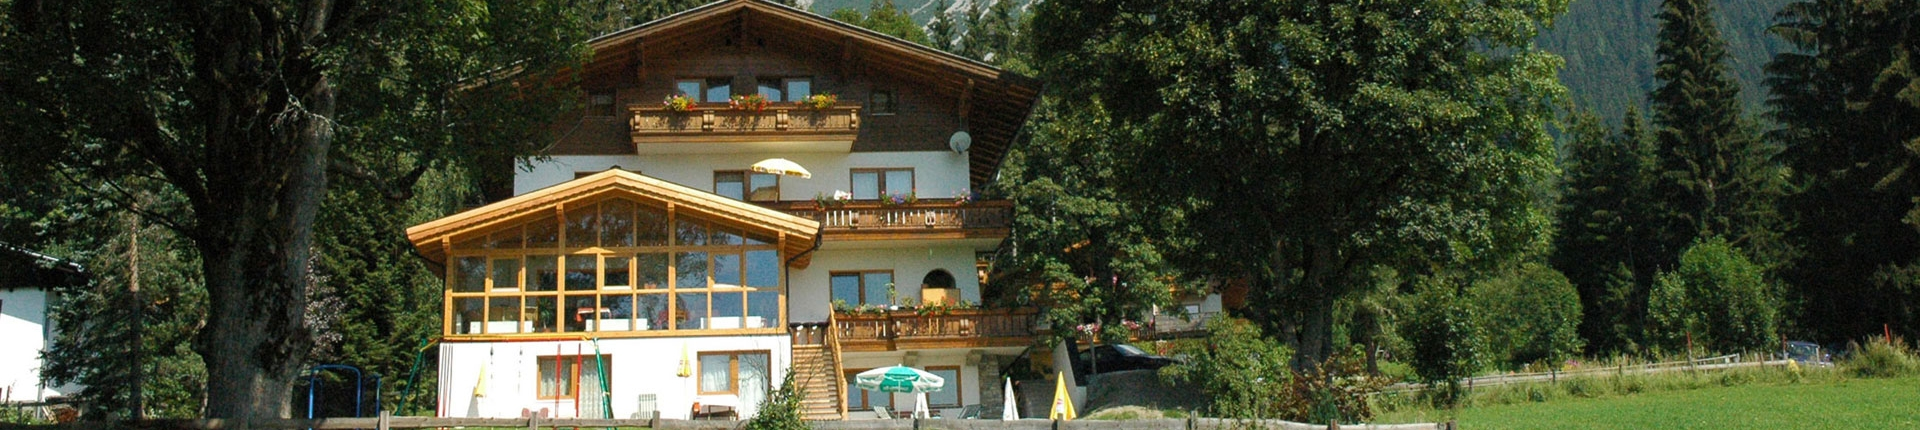 Sommerurlaub Pension Hofweyer